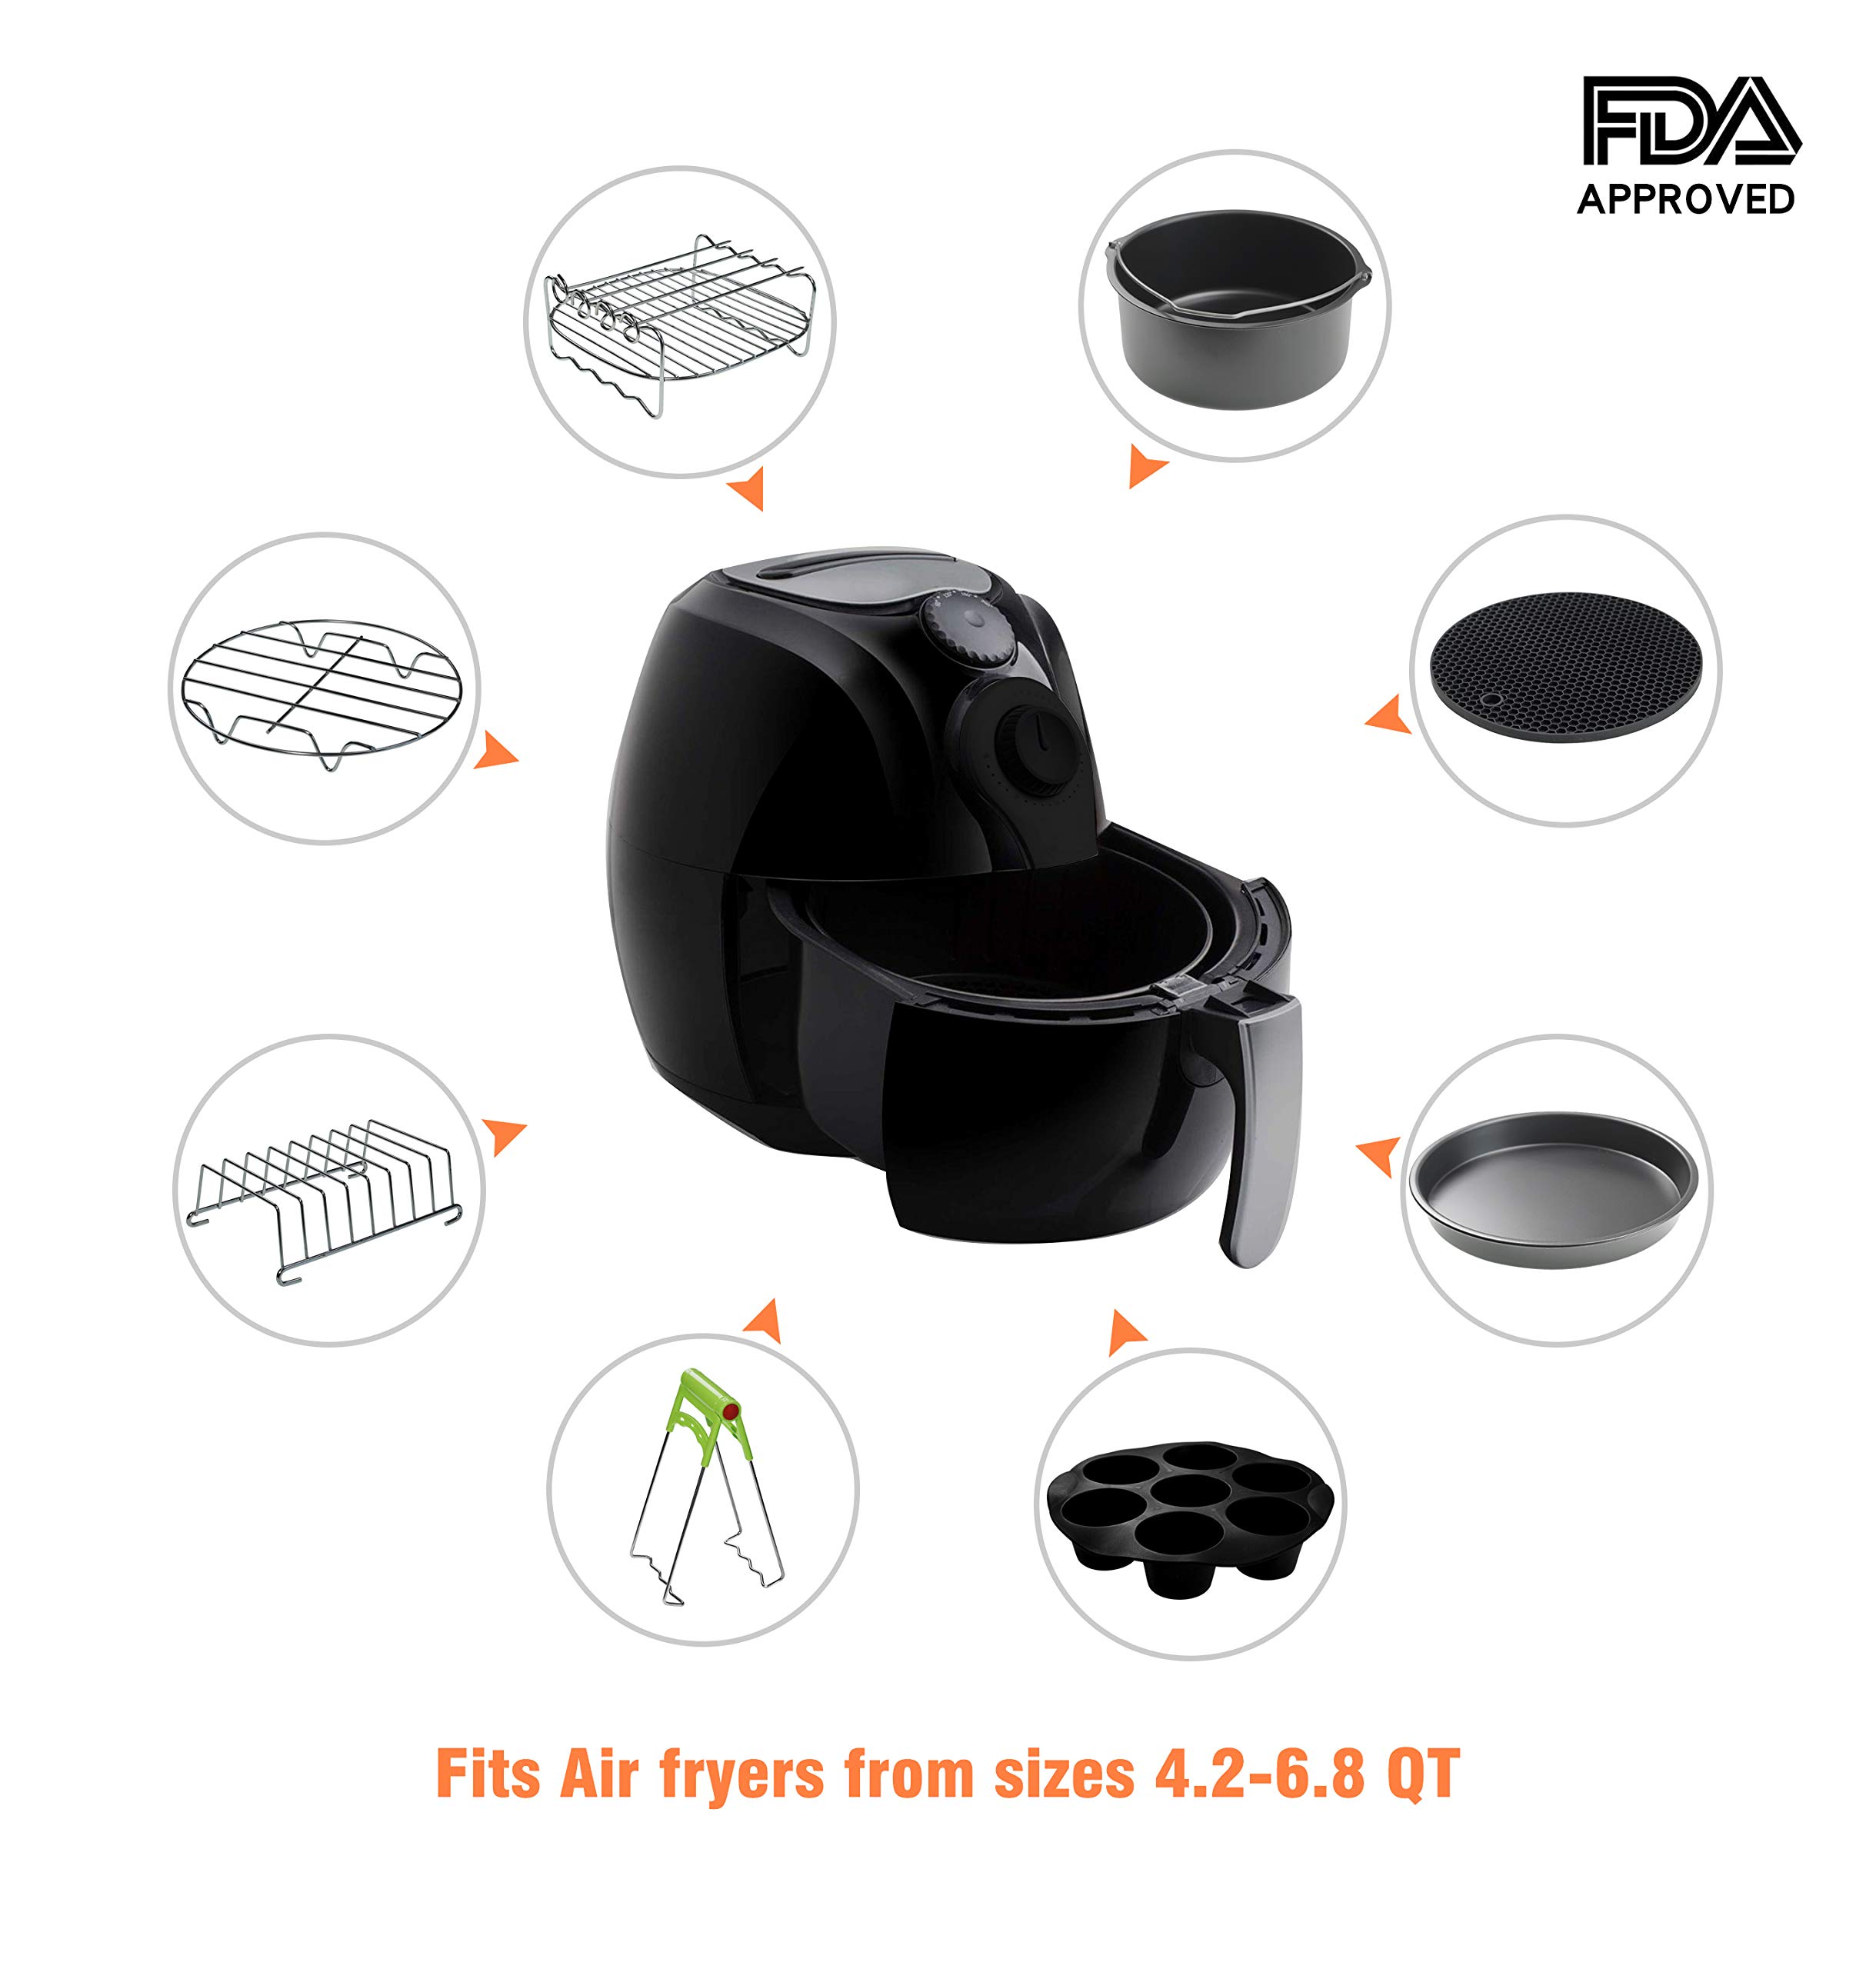 CAXXA XL Air Fryer Accessories Compatible with Gowise, Cozyna and Phillips, Fit all 4.2QT - 6.8QT and UP (Deluxe Set Of 9) by CAXXA (Image #4)